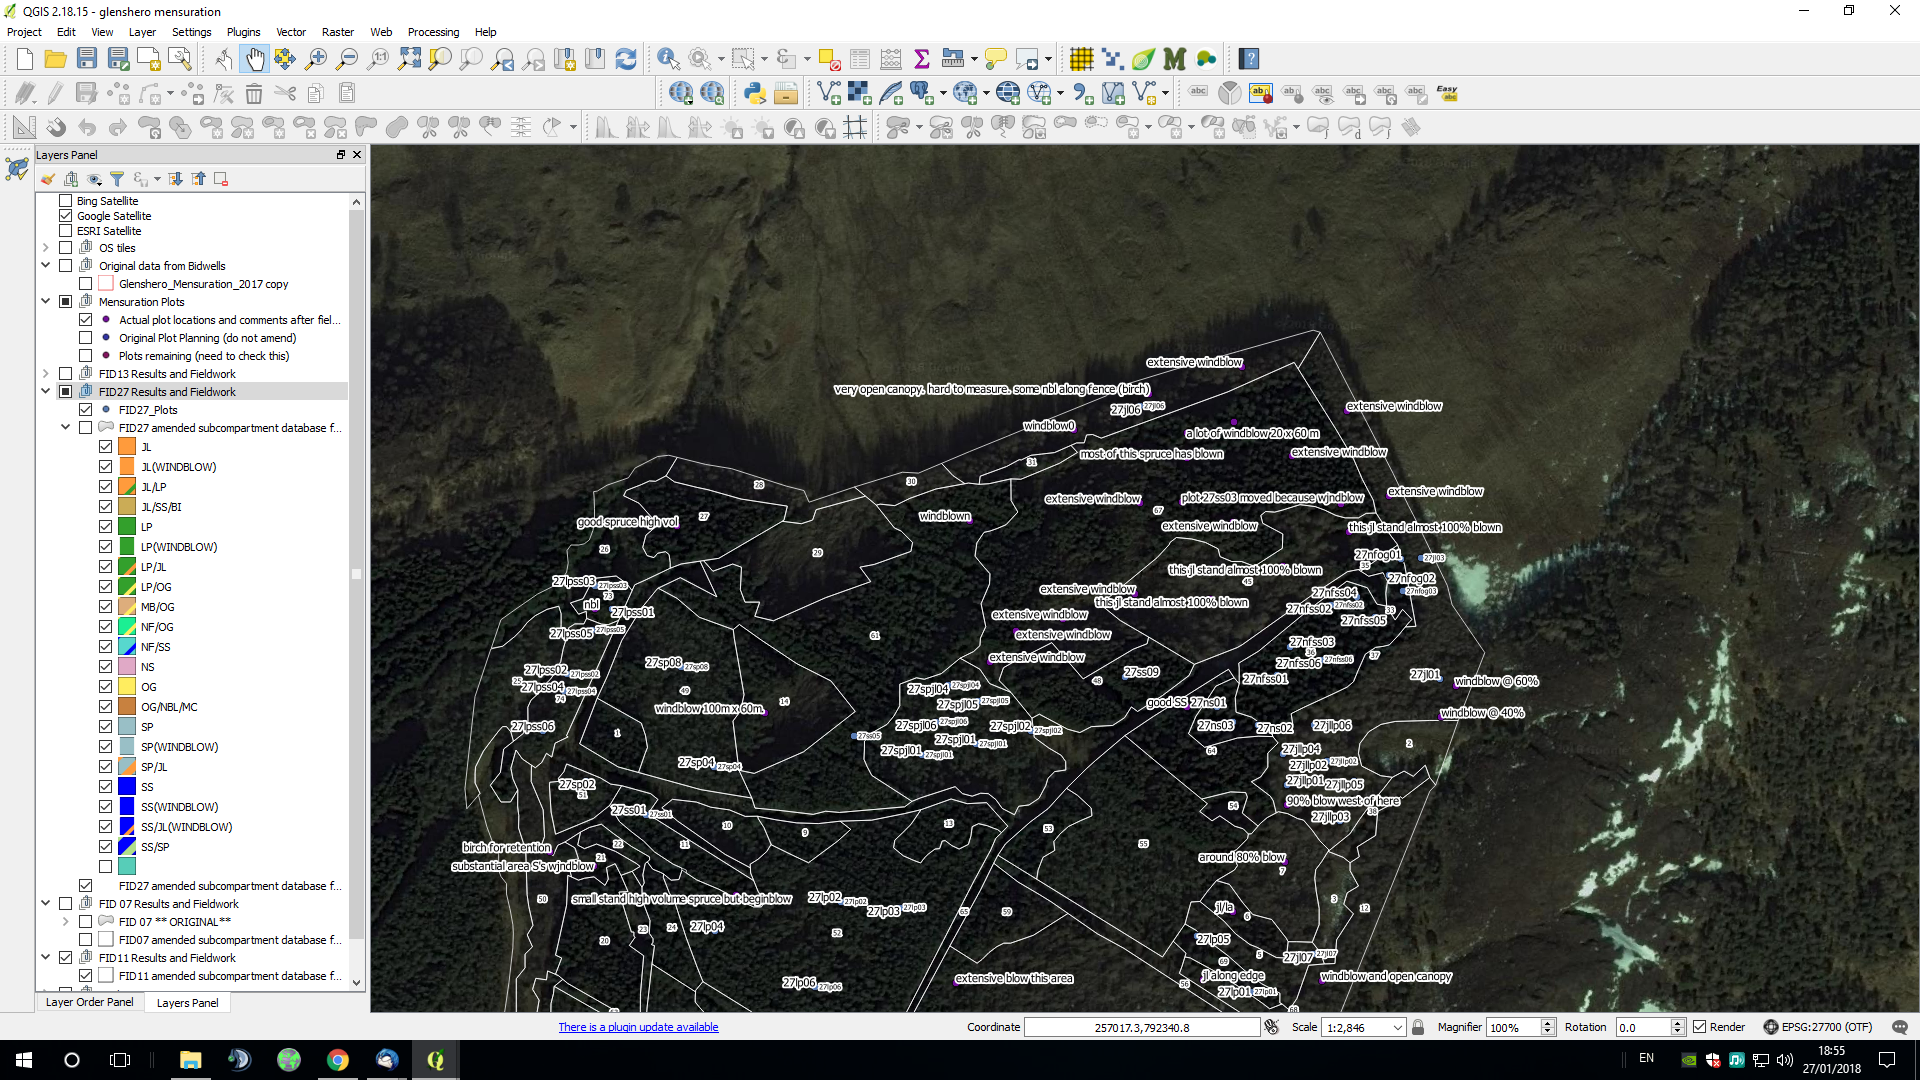 Remapping a forest with Quantum GIS, aerial imagery and field notes collected using a mobile phone app.